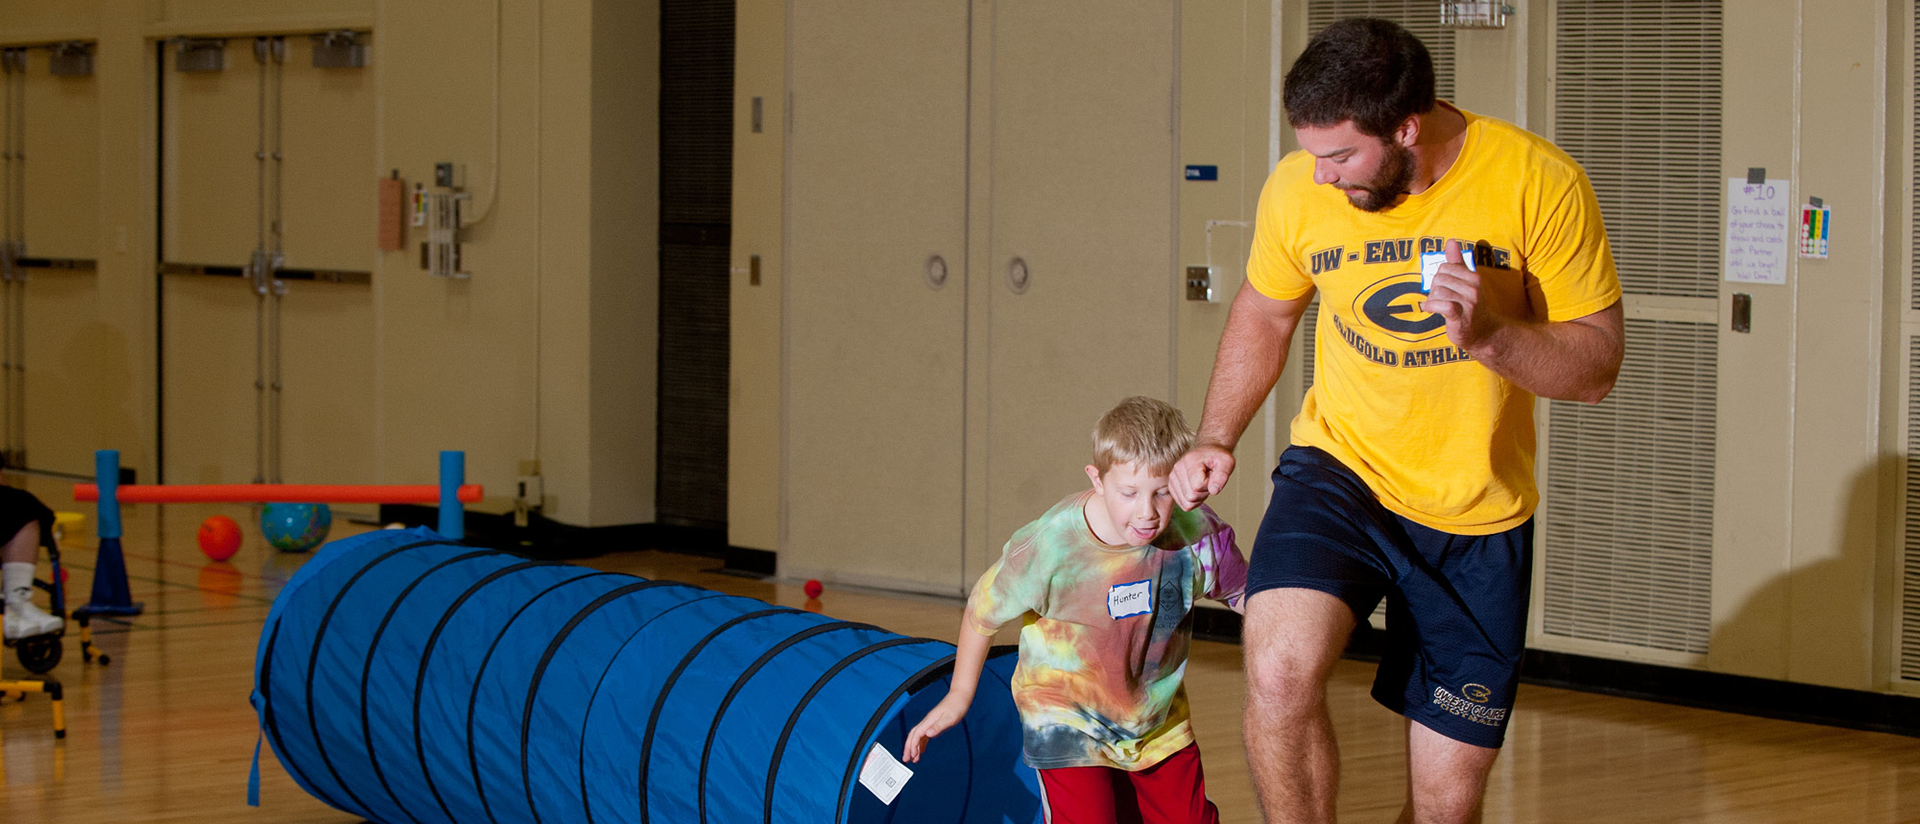 Student teacher helping boy get active.